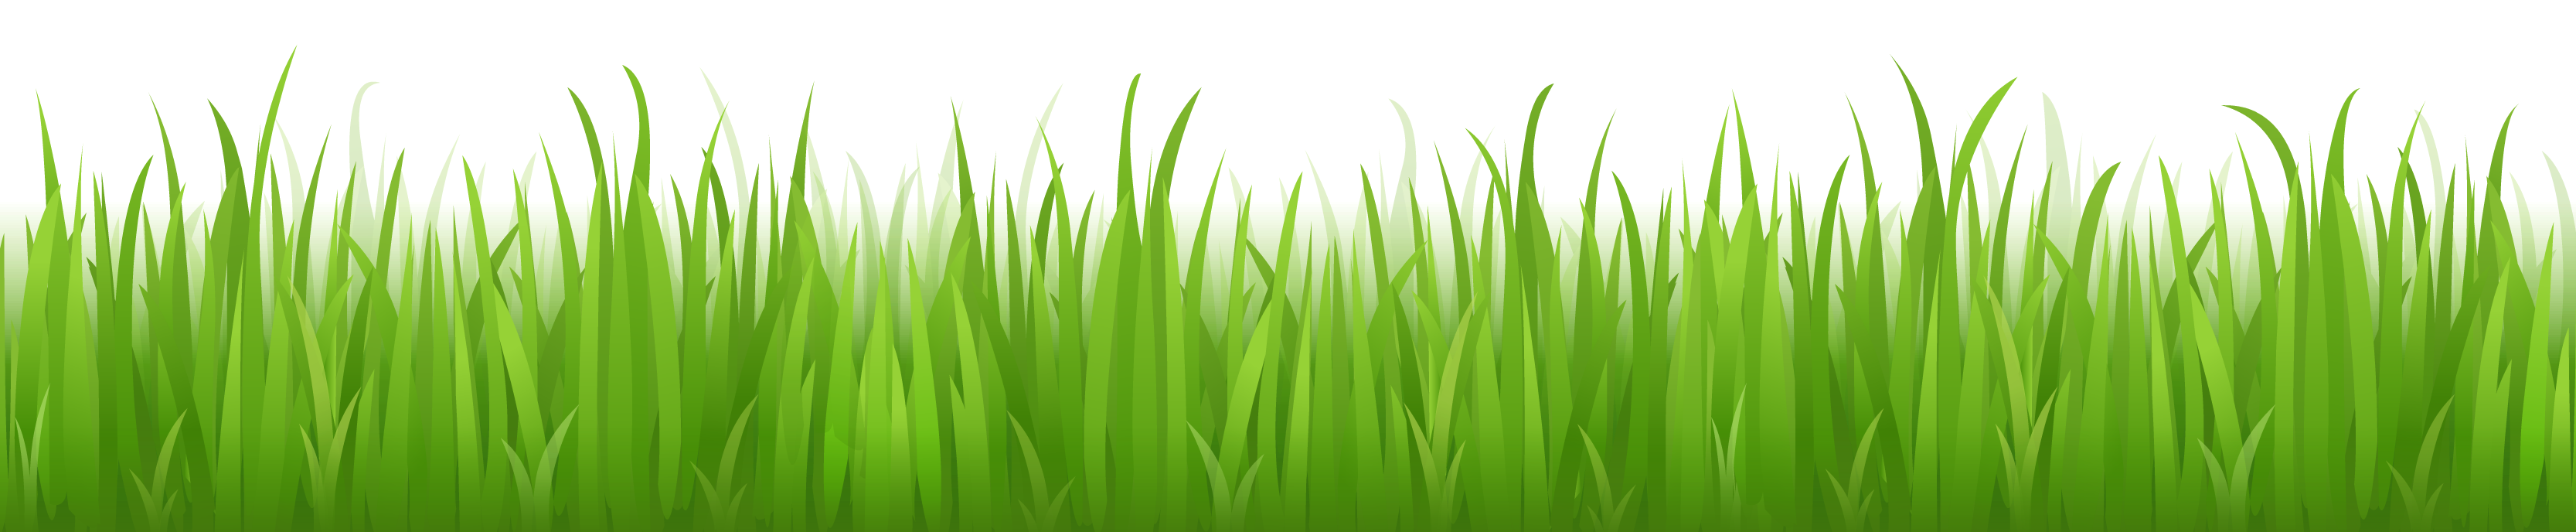 Football grass clipart jpg black and white library Images of Grassy Background Clipart - #SpaceHero jpg black and white library